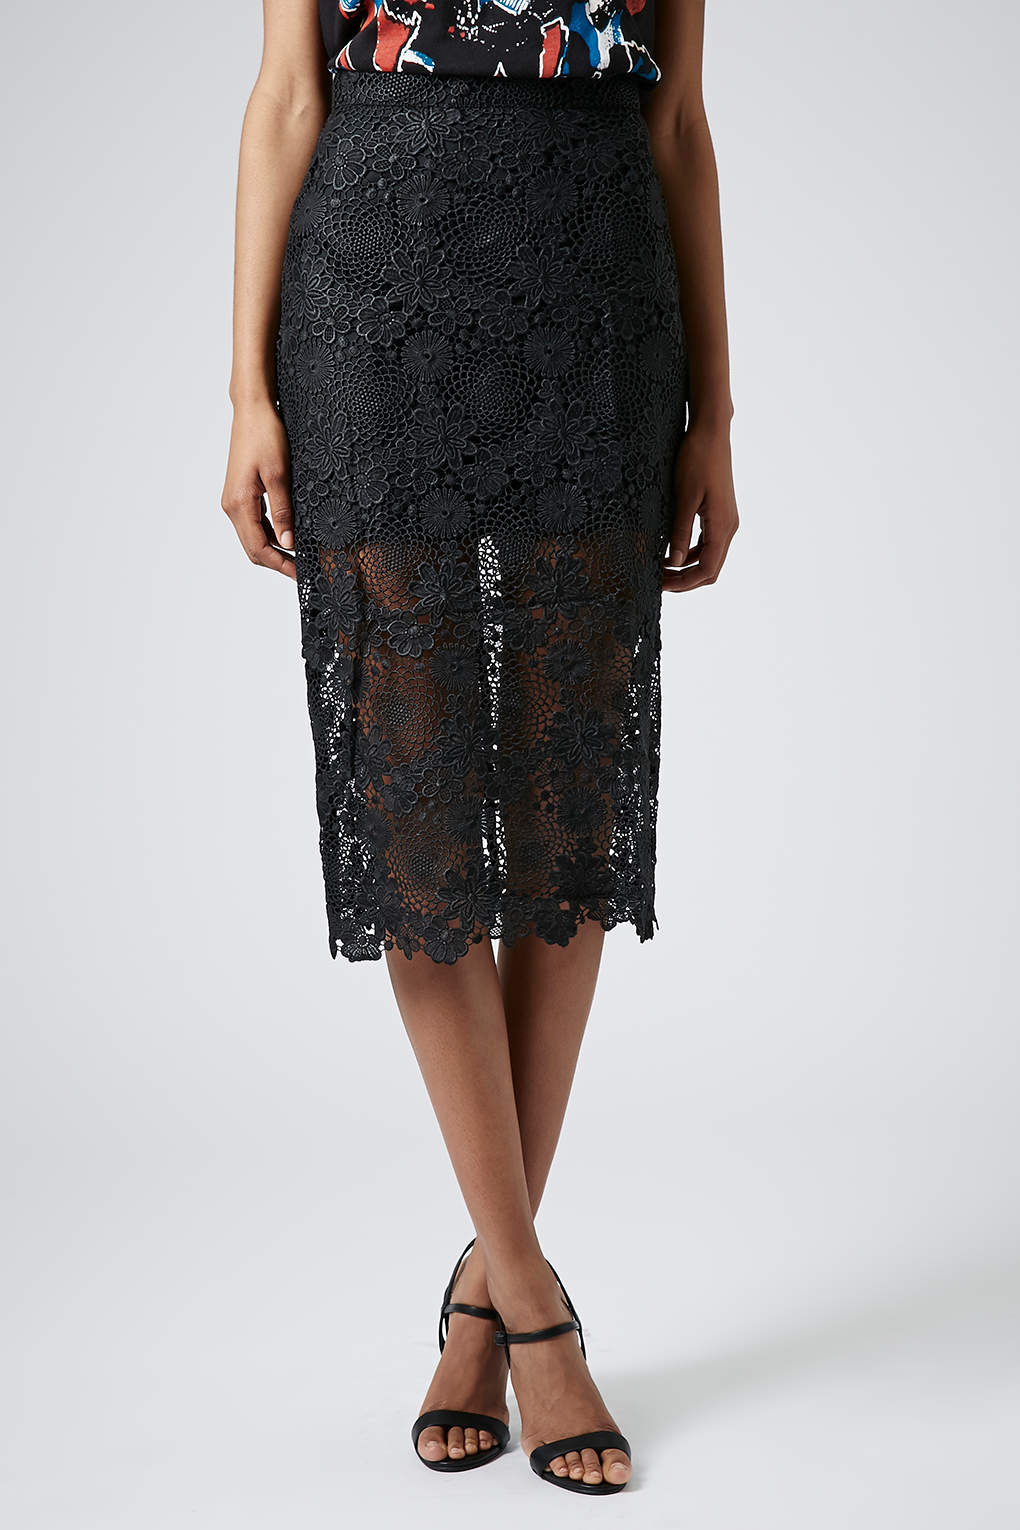 Topshop Lace Pencil Skirt in Black | Lyst